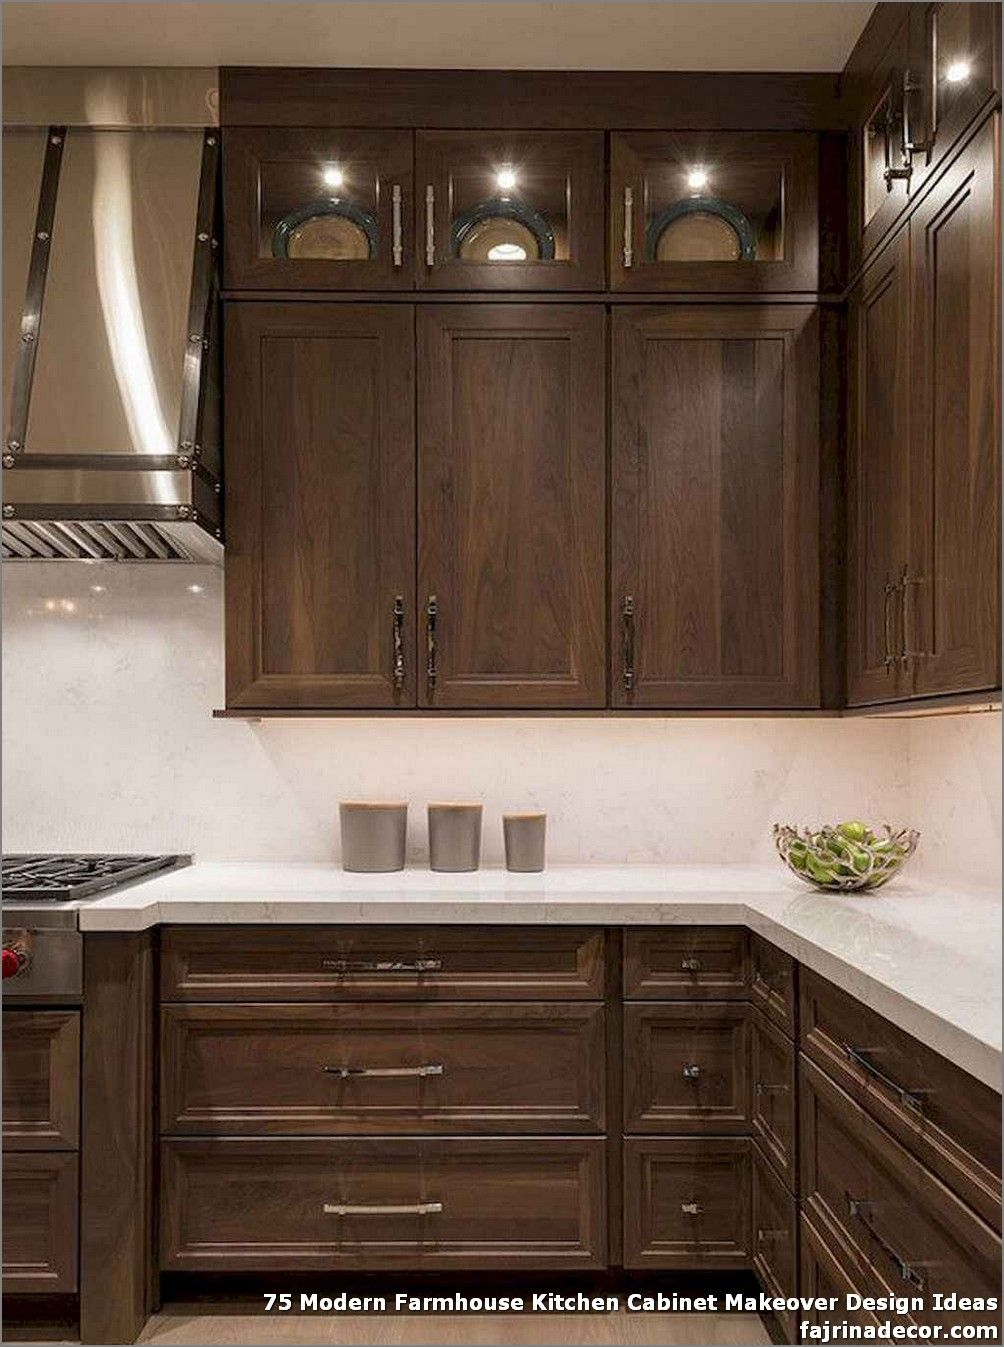 75 Modern Farmhouse Kitchen Cabinet Makeover Design Ideas Best Home Decorati In 2020 Farmhouse Style Kitchen Cabinets Kitchen Cabinet Styles Kitchen Cabinet Design